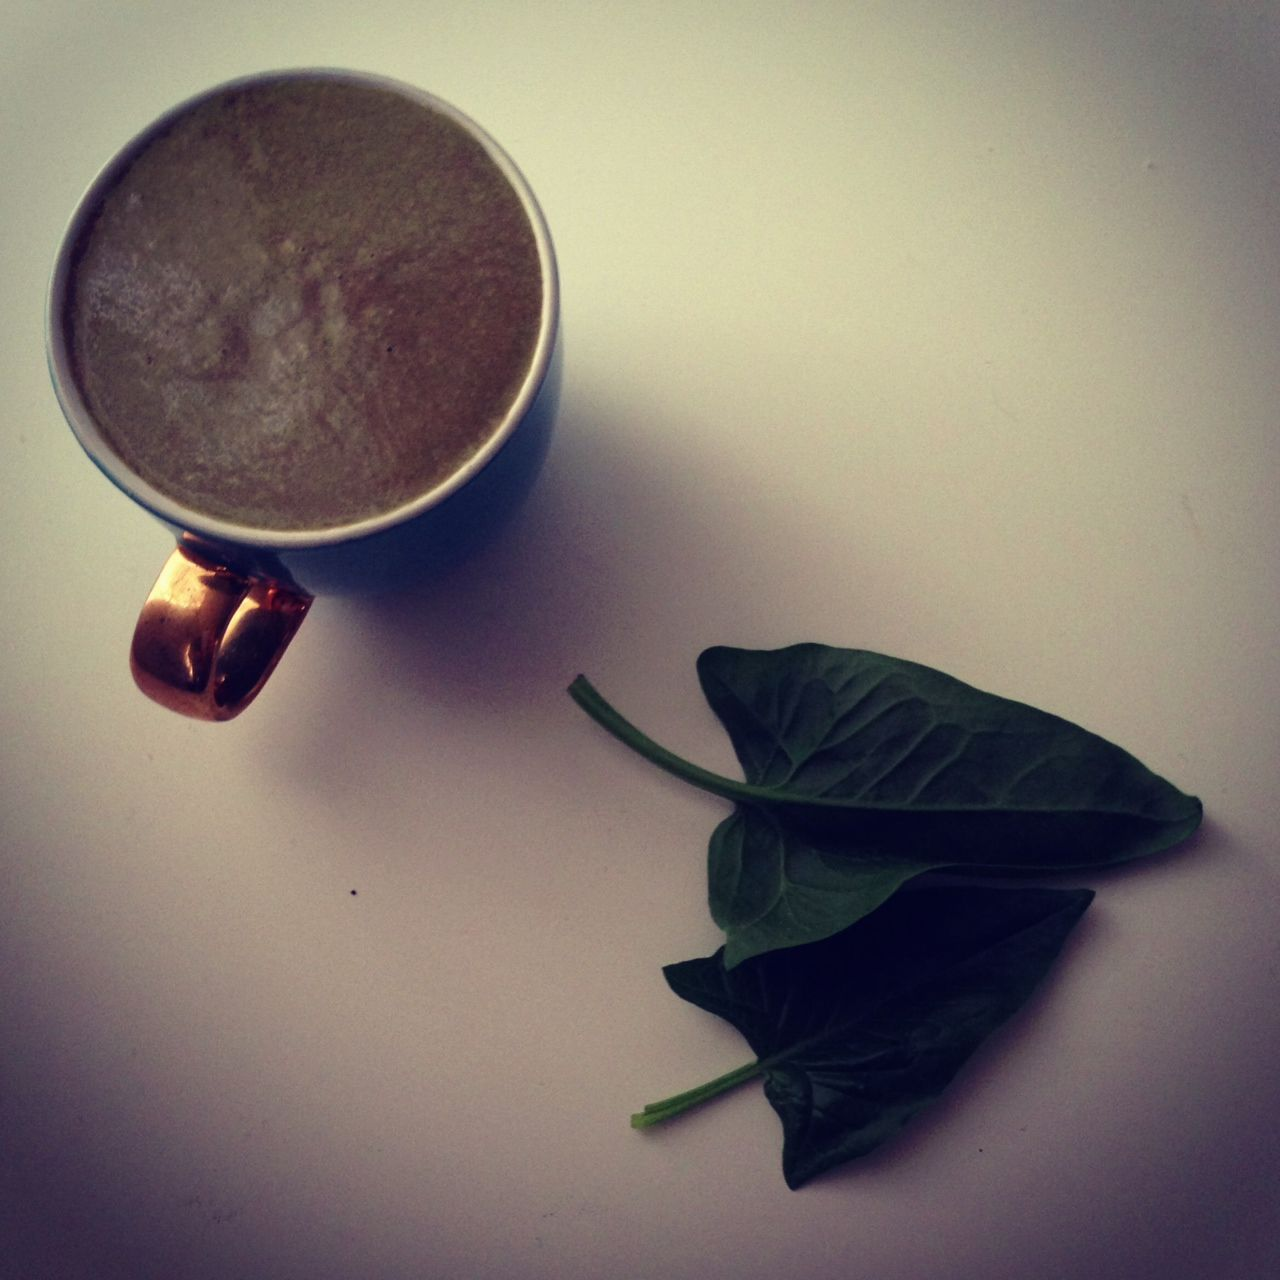 Spinach, Cacao, Cacao butter, Avocado, Walnut - pure indulgence smoothie.